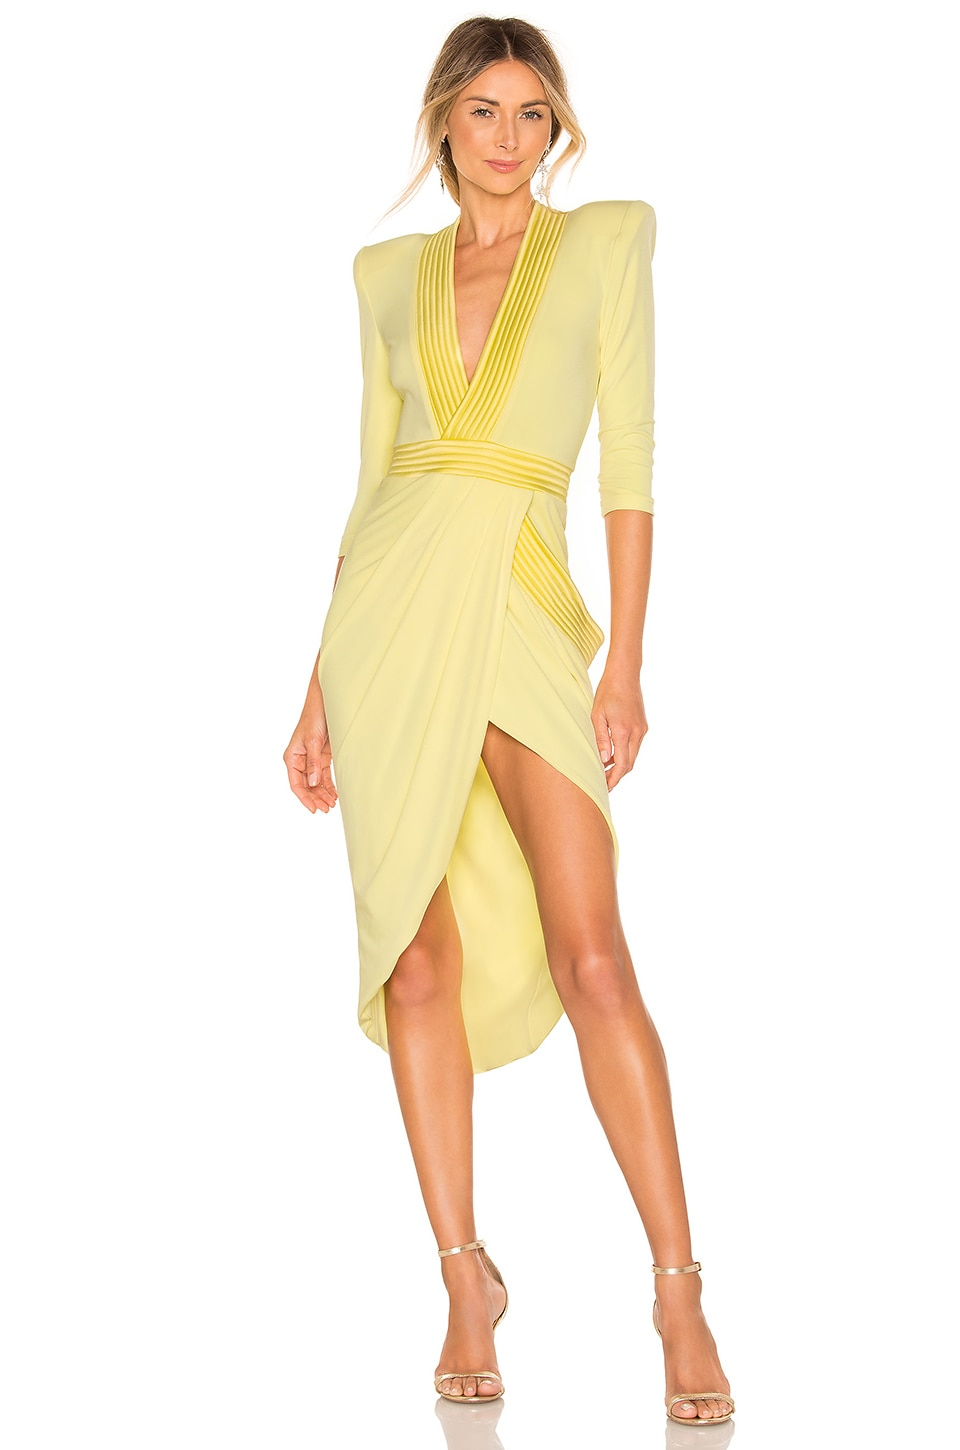 Zhivago Eye Of Horus Dress in Pastel Yellow